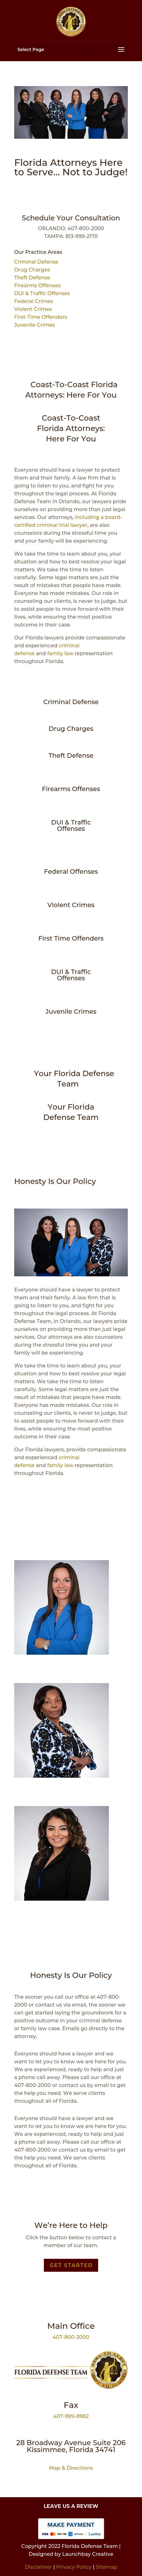 The Figueroa Law Firm, A Professional Association - Orlando FL Lawyers